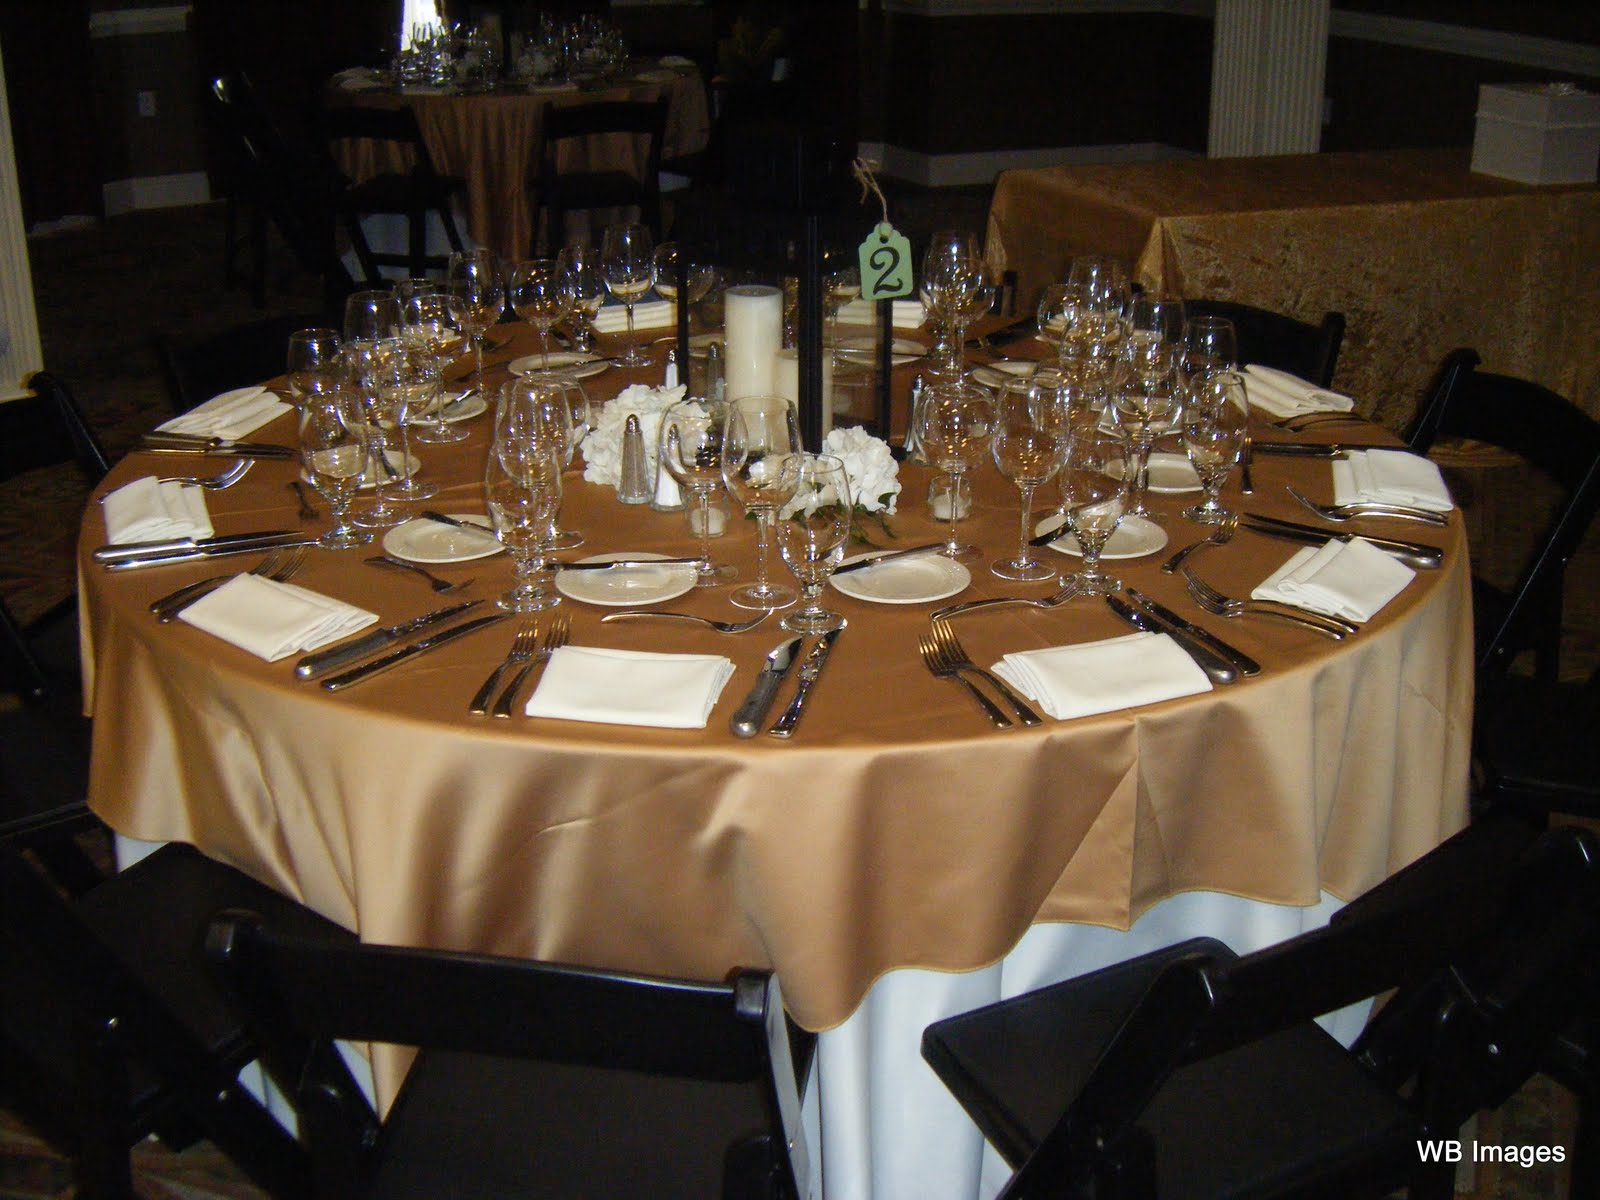 The Colors For Wedding Were White Gold And Green Touches Of Black Lantern Centerpieces Chairs Throughout Room Set Off